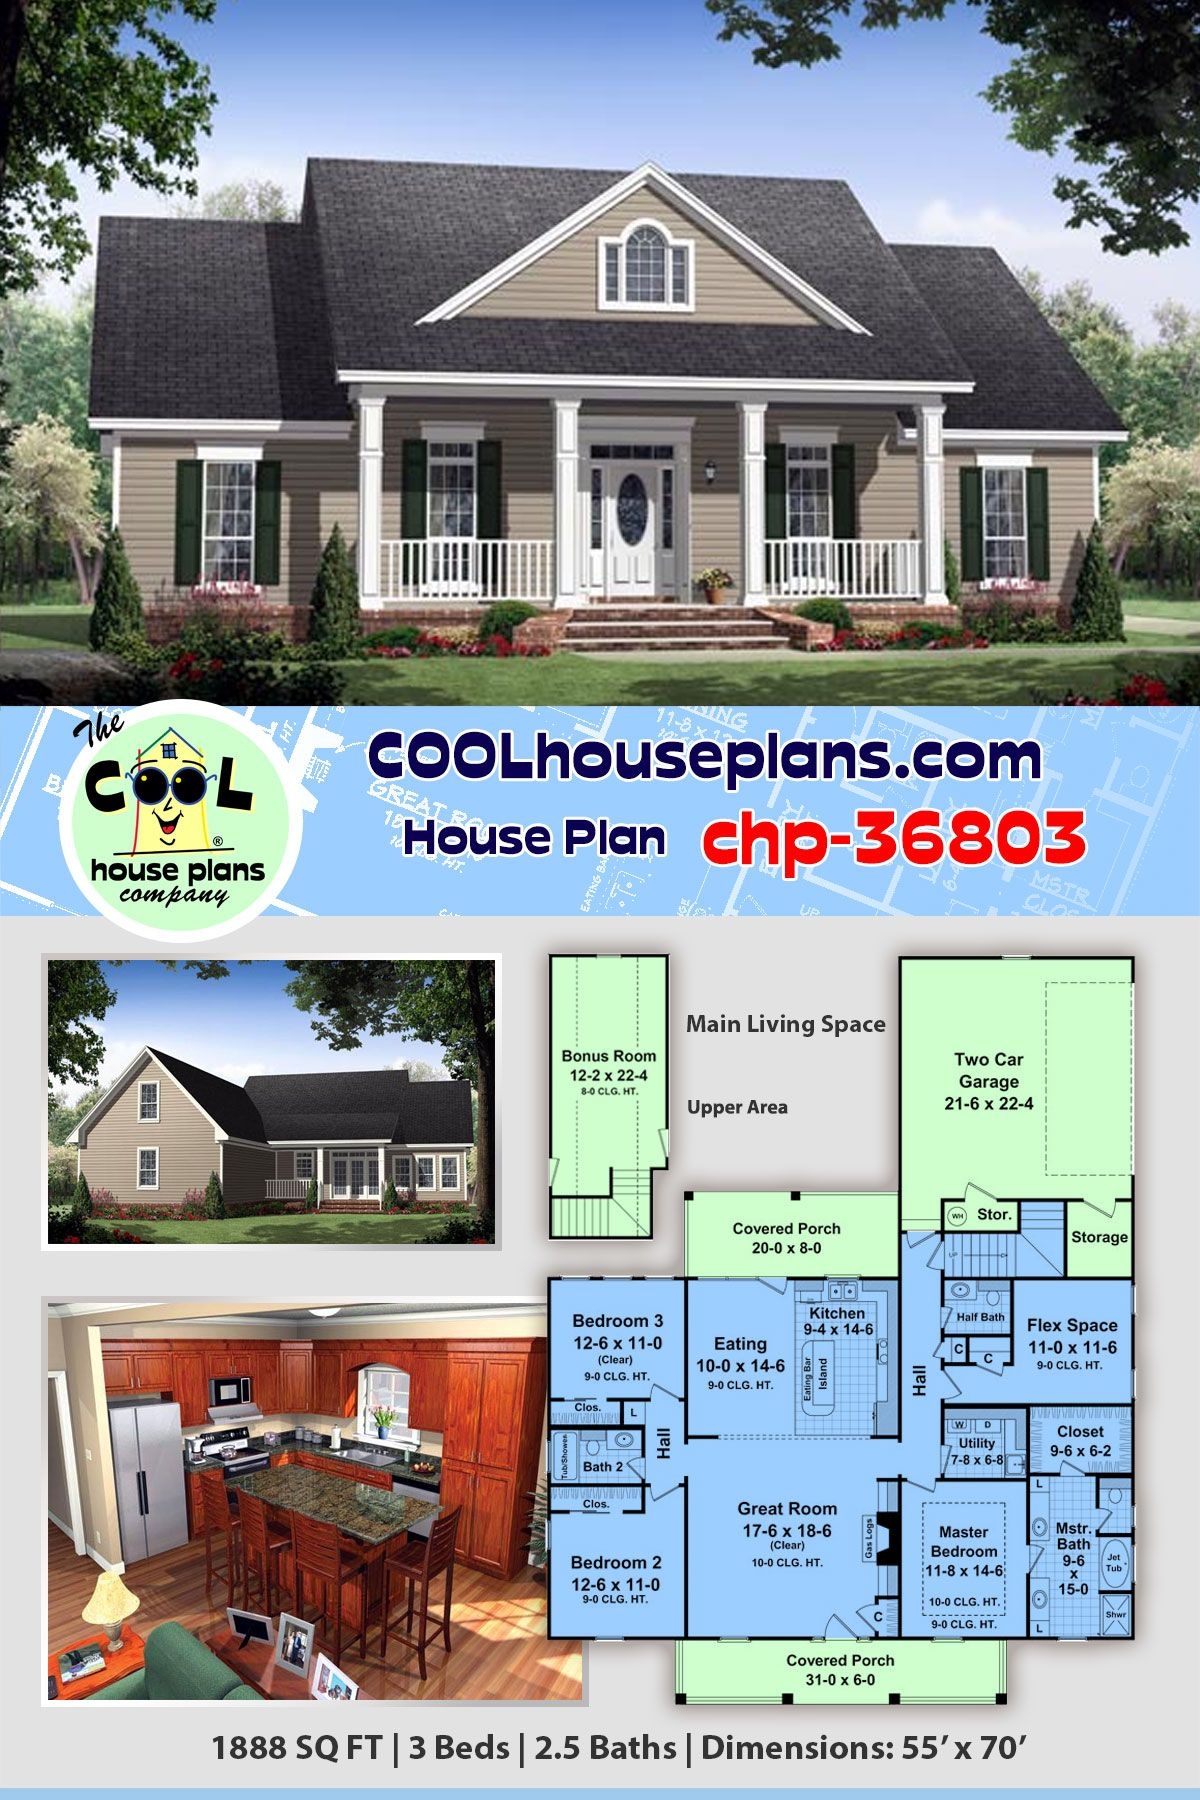 Colonial House Plan Chp 36803 At Coolhouseplans Com House Plans My House Plans Ranch House Plans